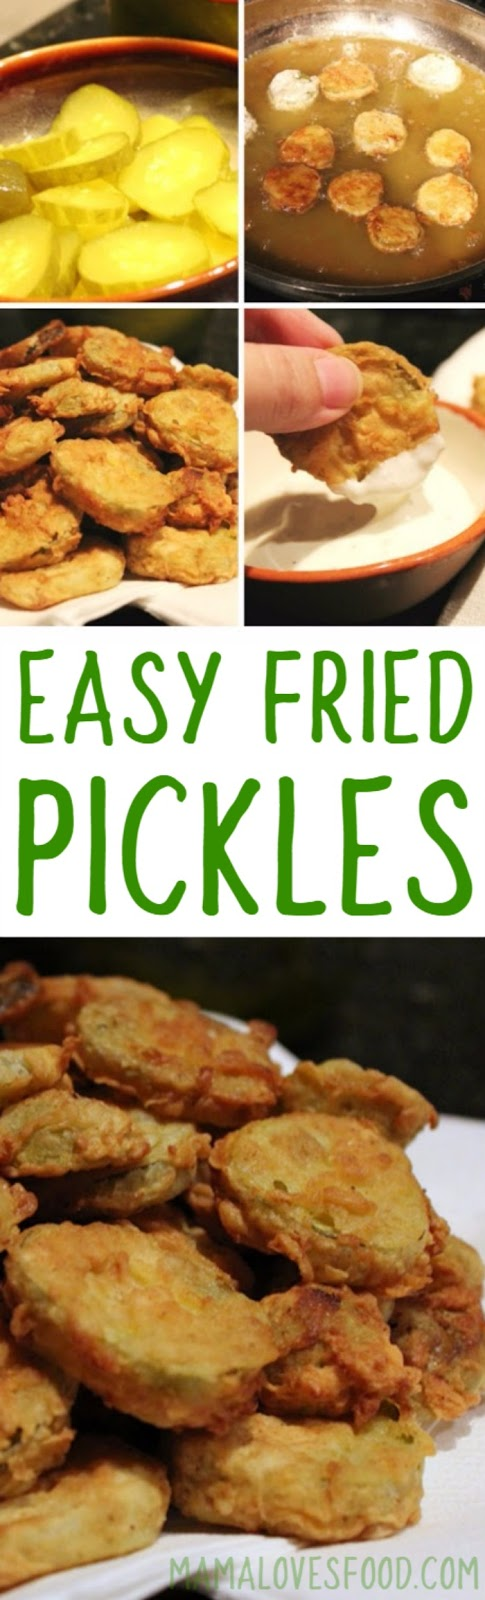 How to Fry Pickles at Home